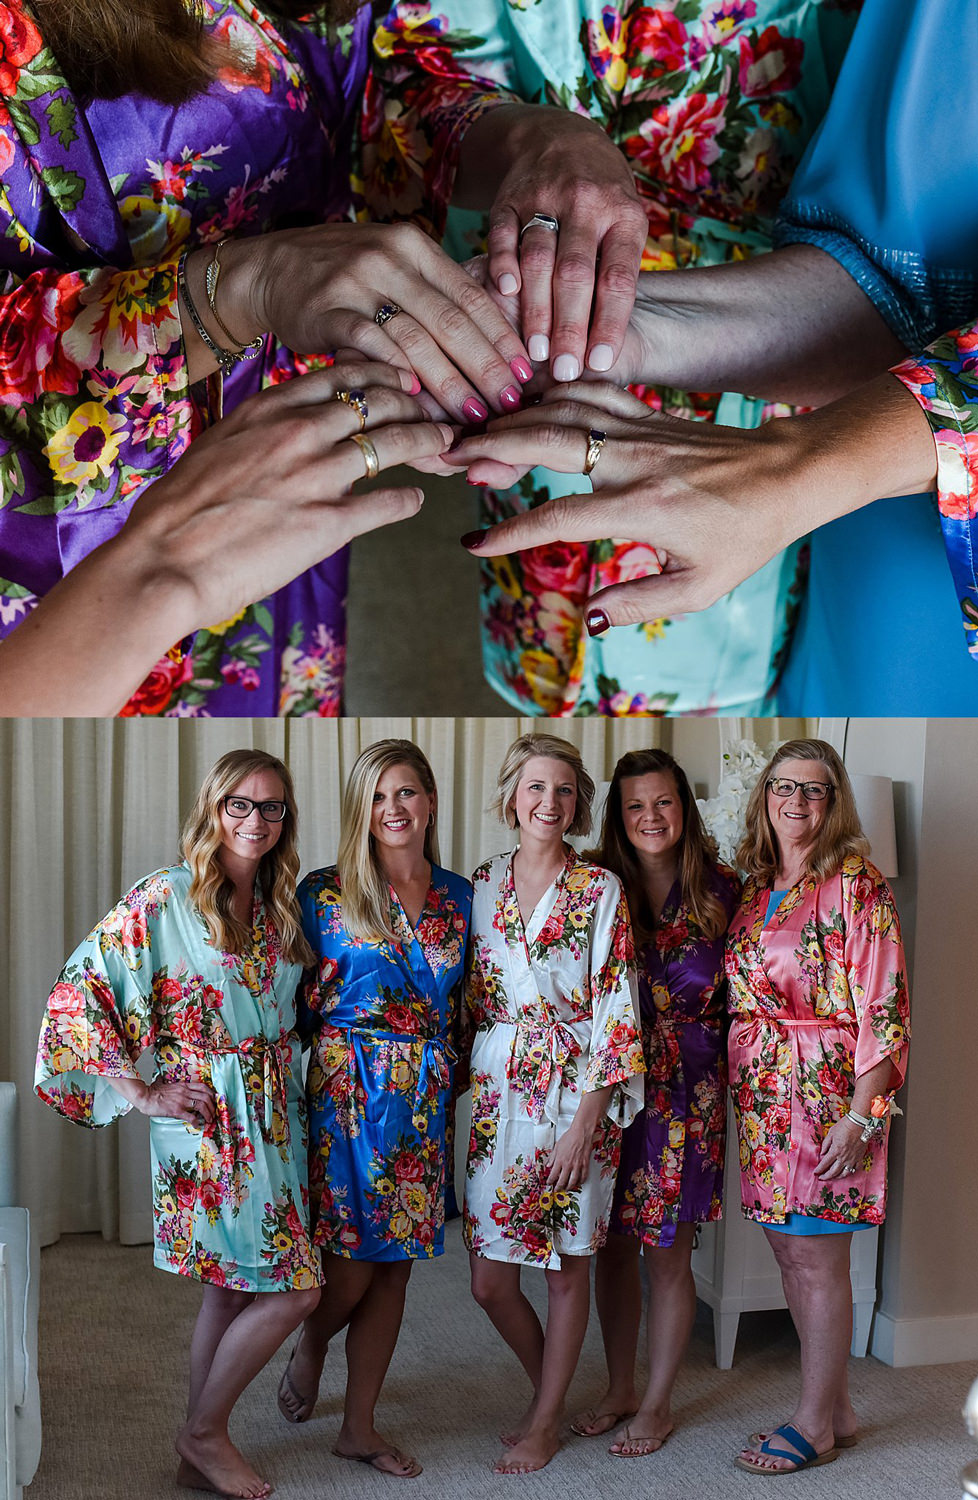 bridal-party-photos-blue-horizon-sandbridge-wedding-day-melissa-bliss-photography.jpg